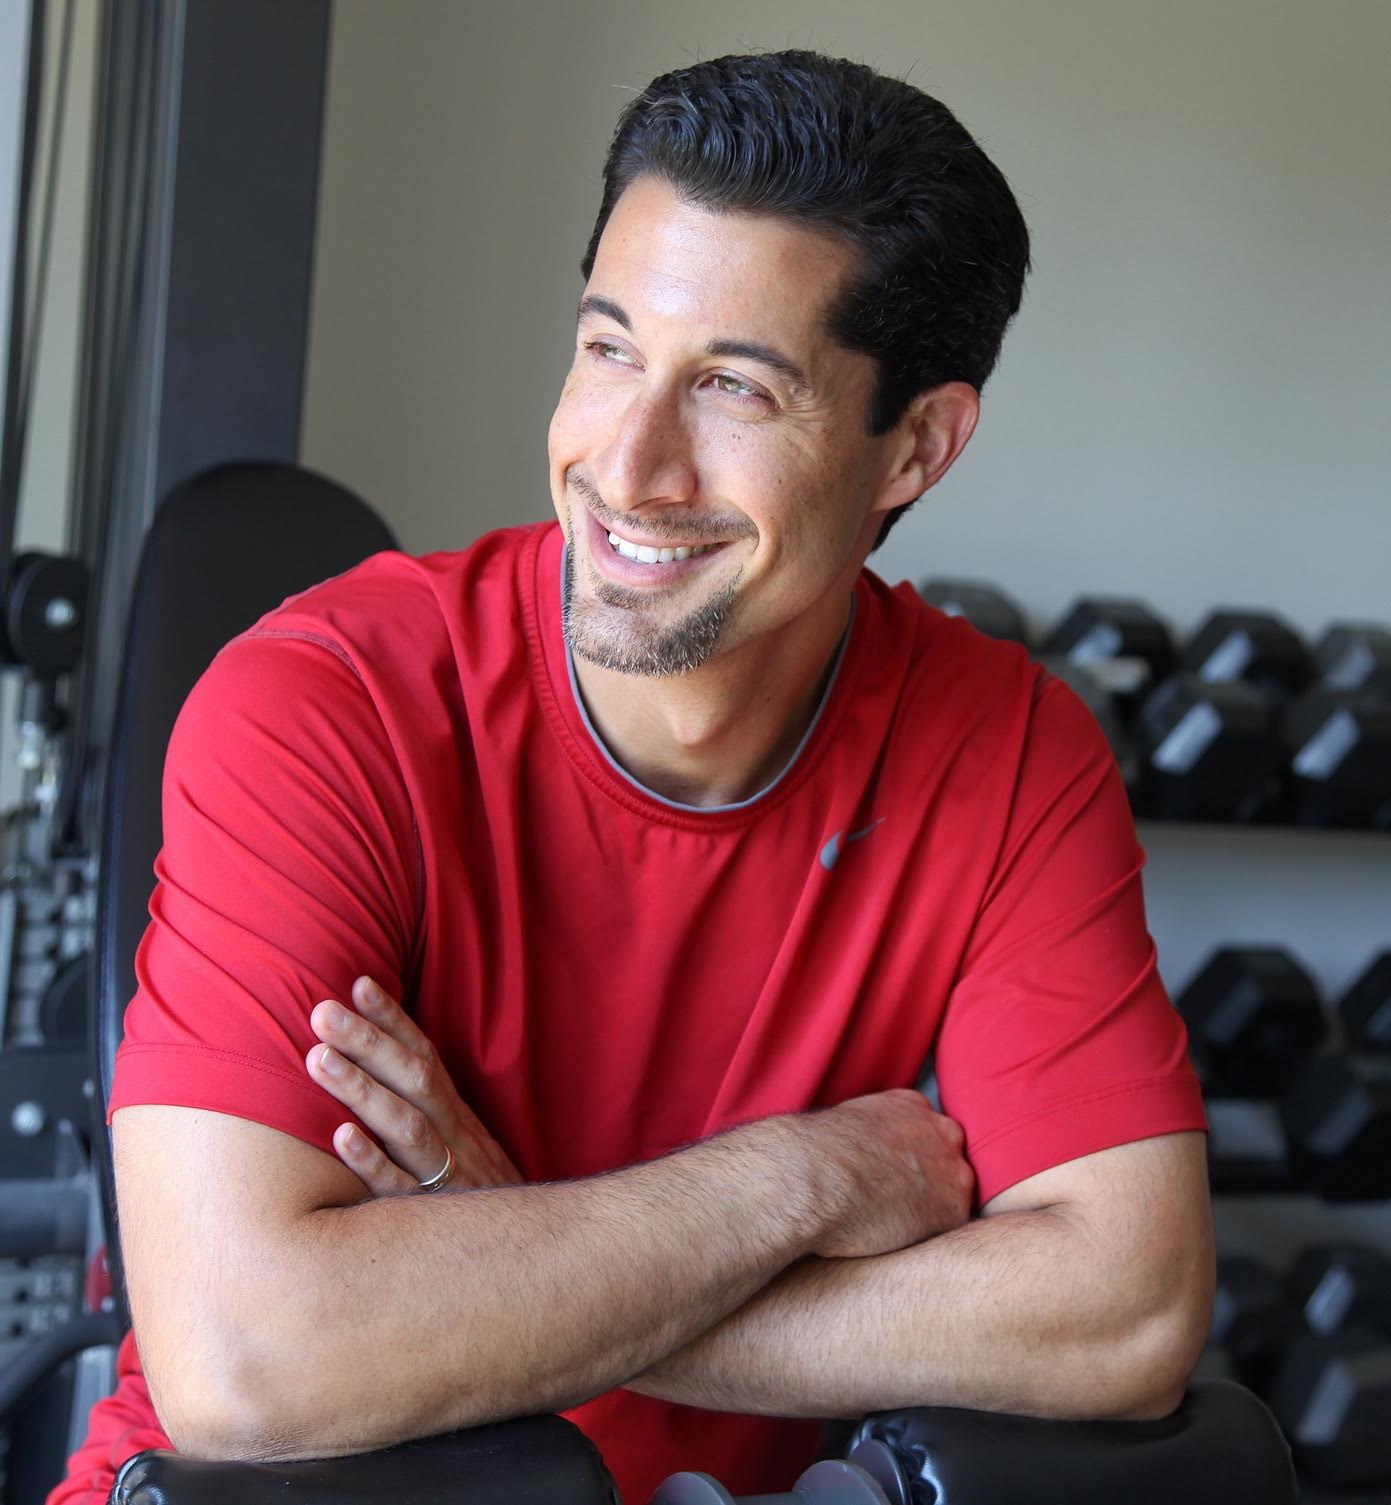 Personal Trainer Madison Wisconsin